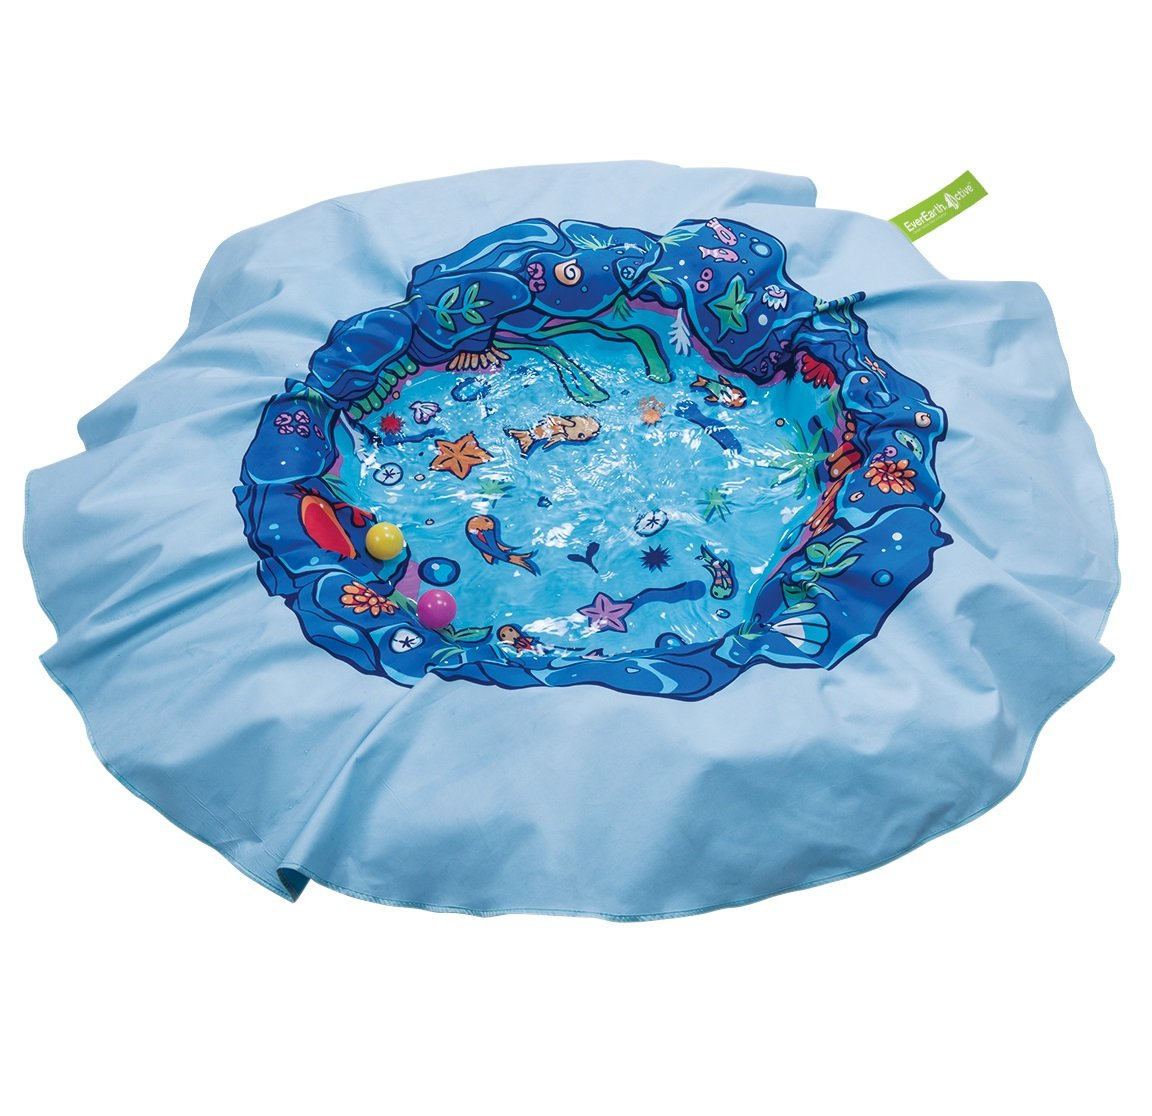 EverEarth E Lite Waterproof Beach Blanket & Kiddie Pool, Blue by EverEarth